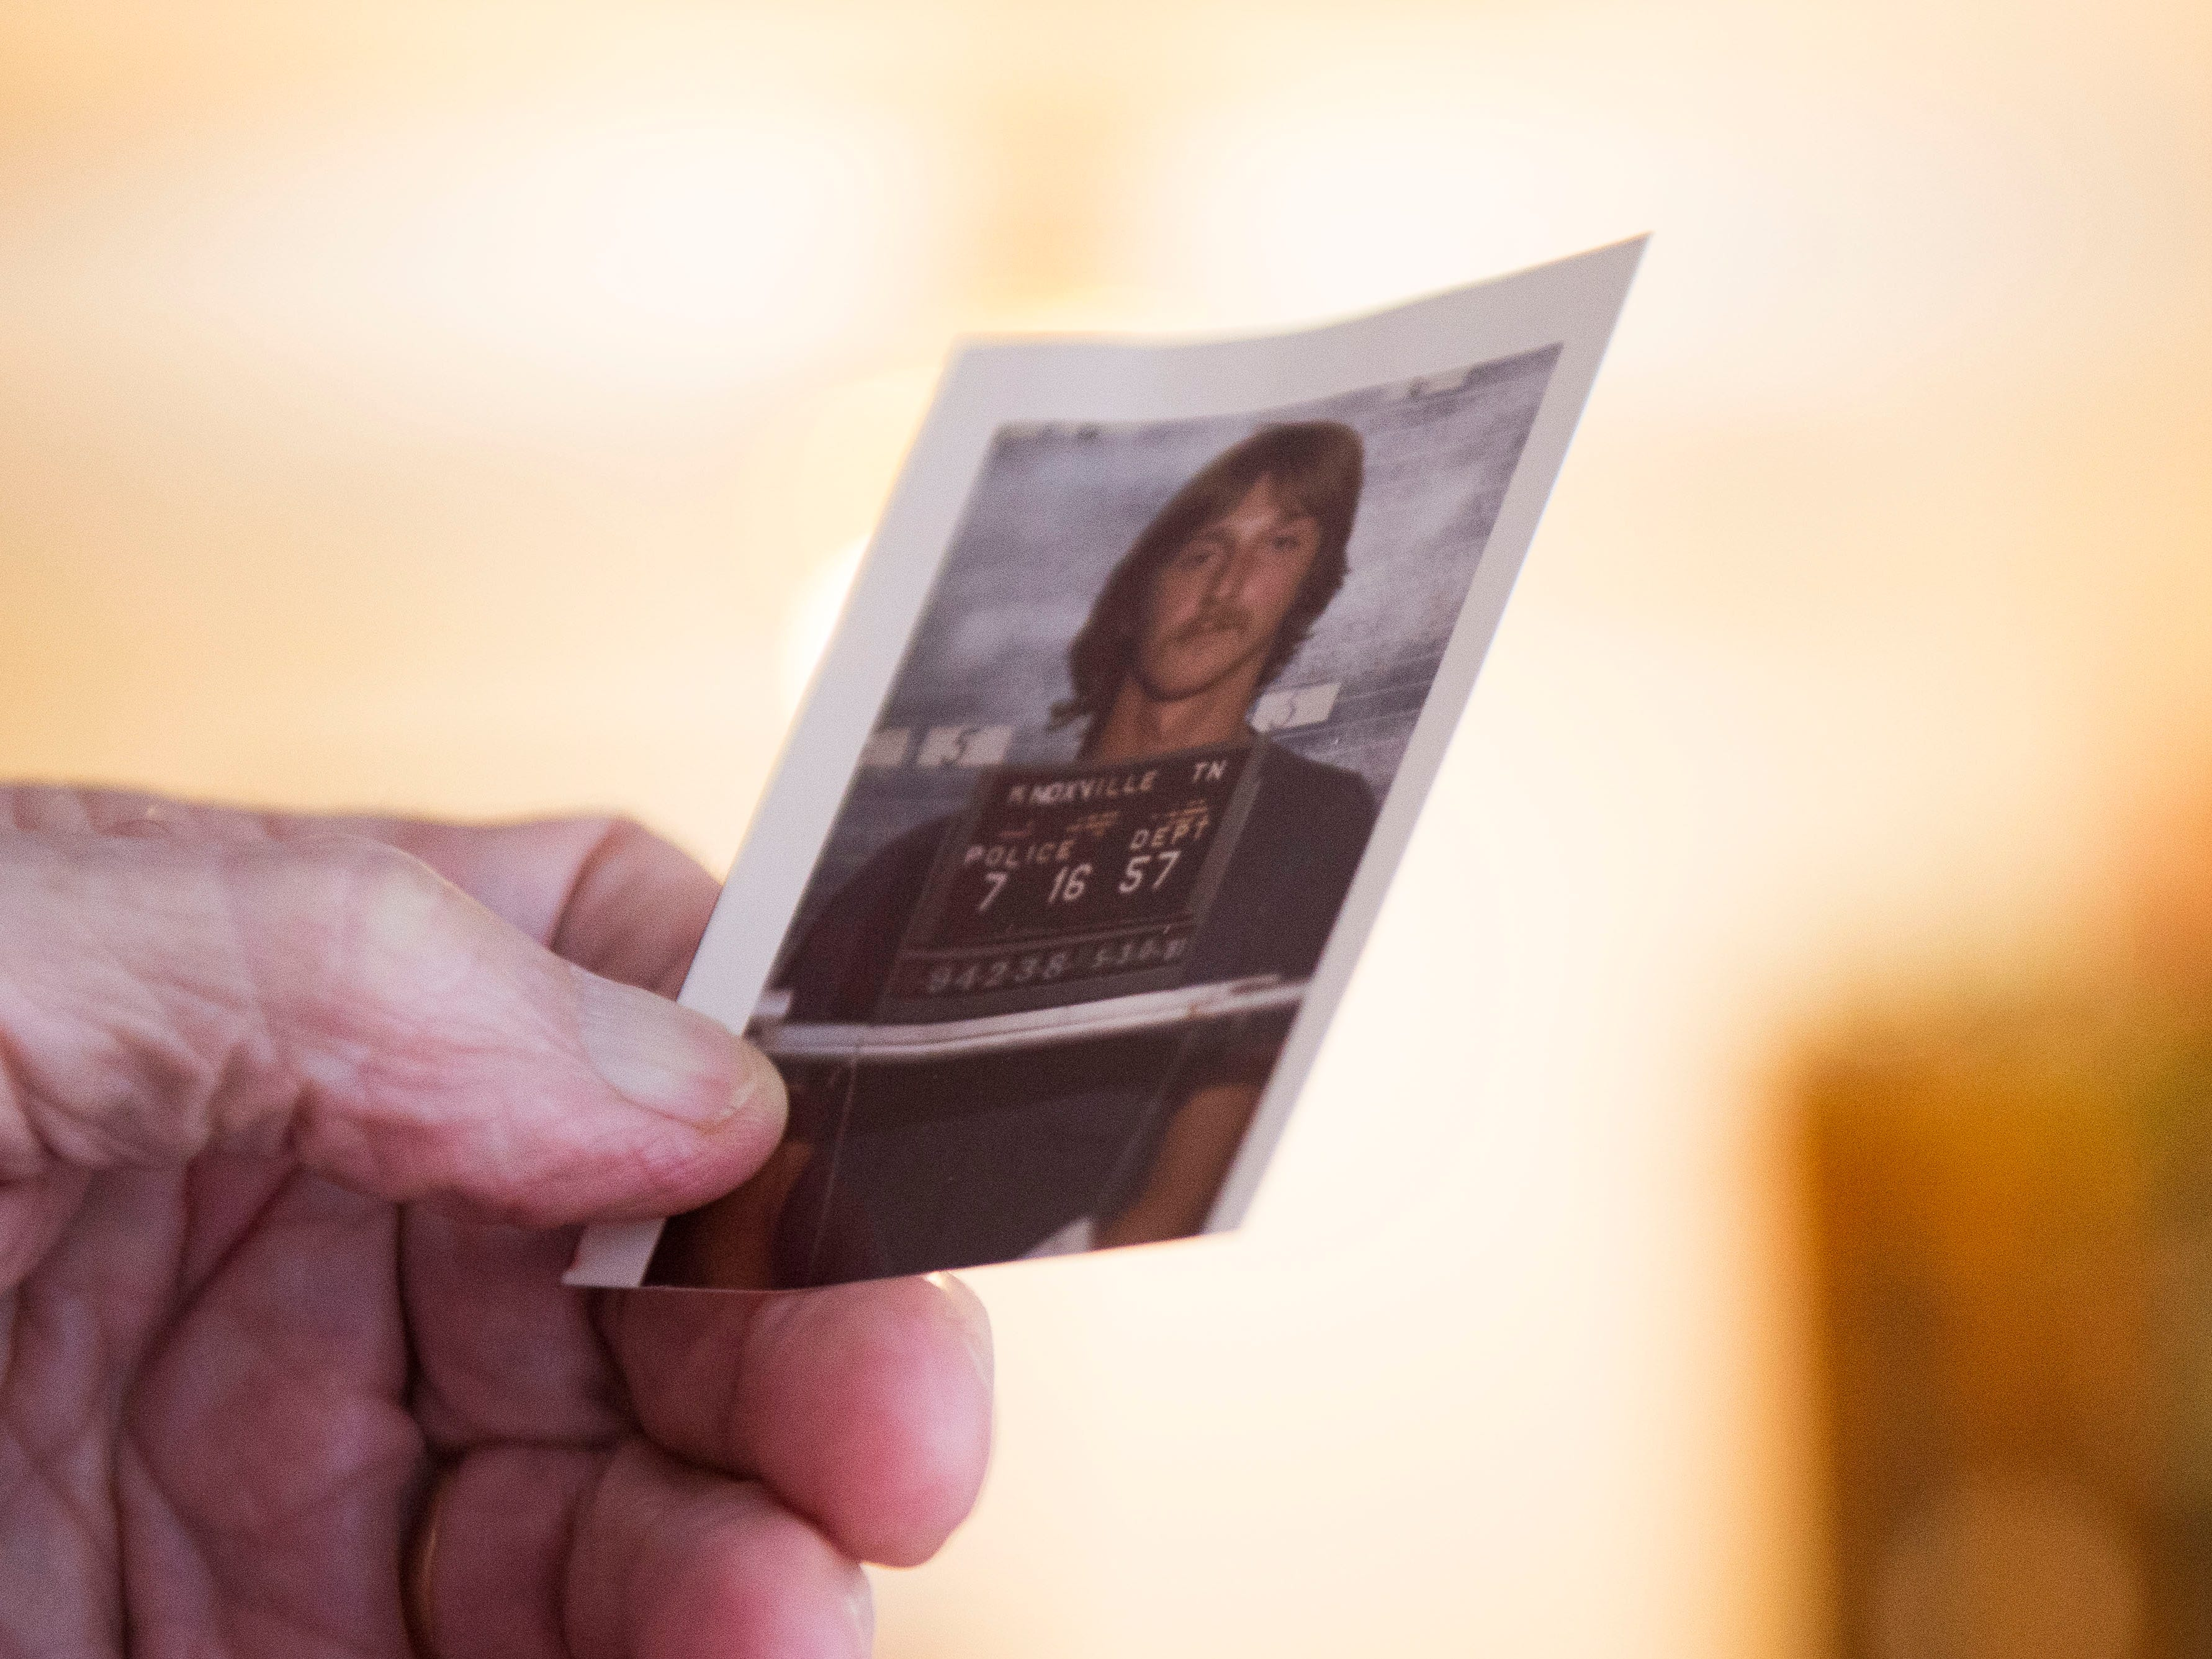 Retired Knoxville Police Department investigator Jim Winston, holds a mugshot of David Earl Miller in his Knoxville home Tuesday, Nov. 27, 2018. Winston recounted the case of David Earl Miller's murder of Lee Standifer back in the 1980's.